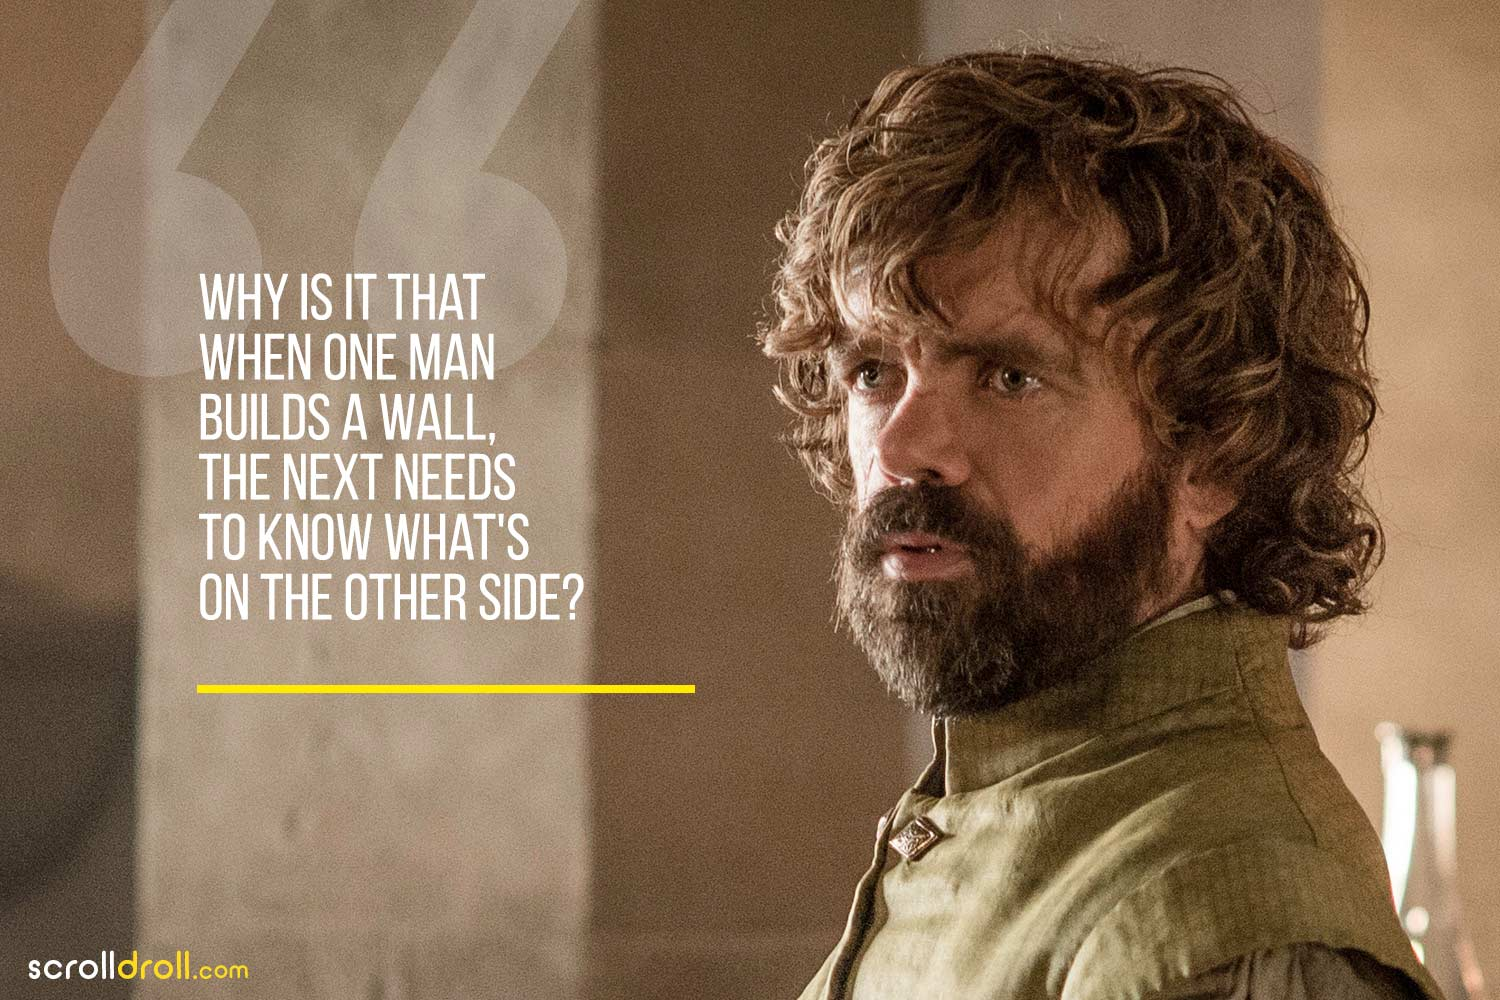 Tyrion-Why it is that when one man builds a wall, the next needs to know what's on the other side?